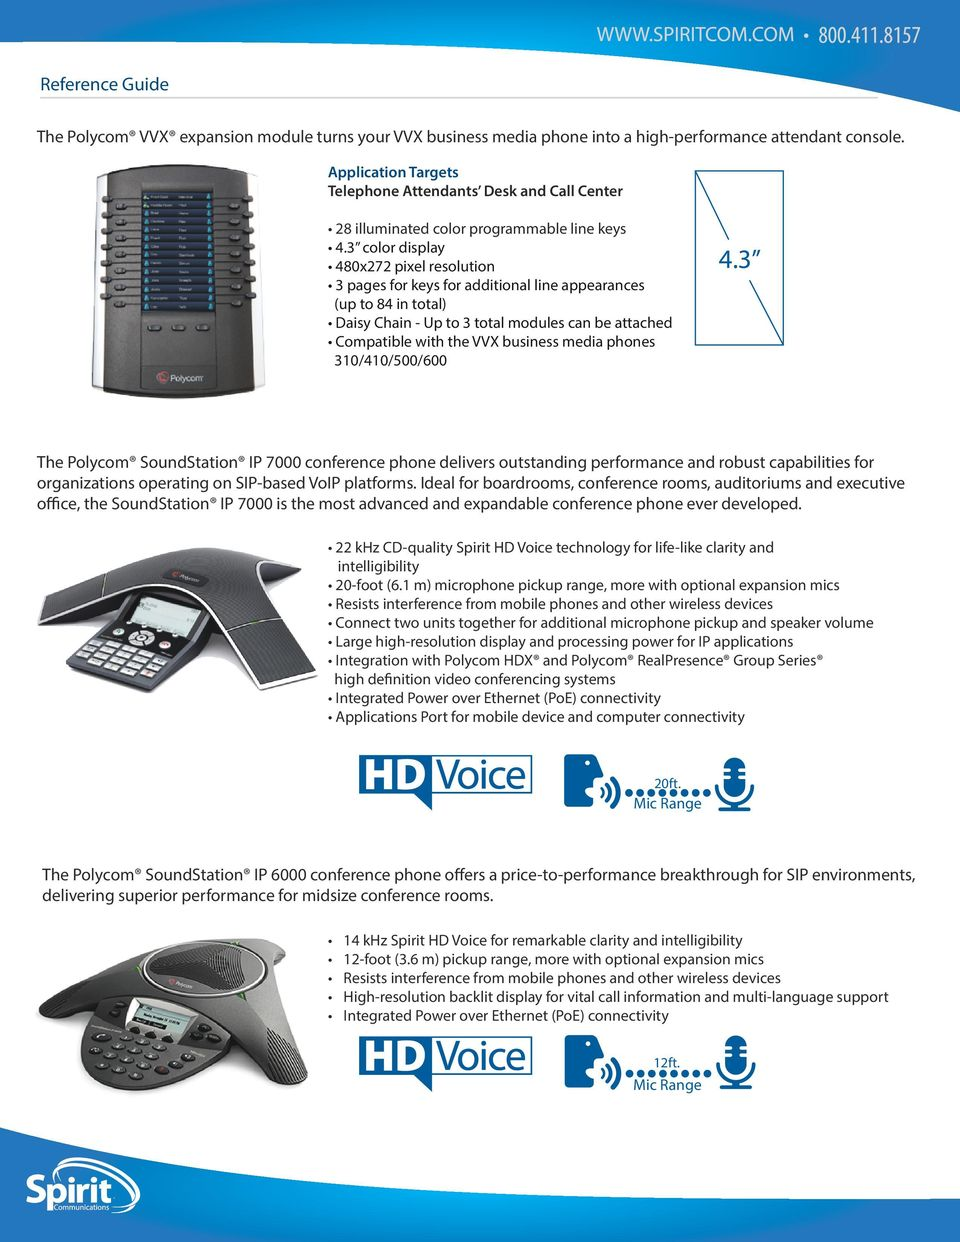 modules can be attached Compatible with the VVX business media phones 310/410/500/600 The Polycom SoundStation IP 7000 conference phone delivers outstanding performance and robust capabilities for